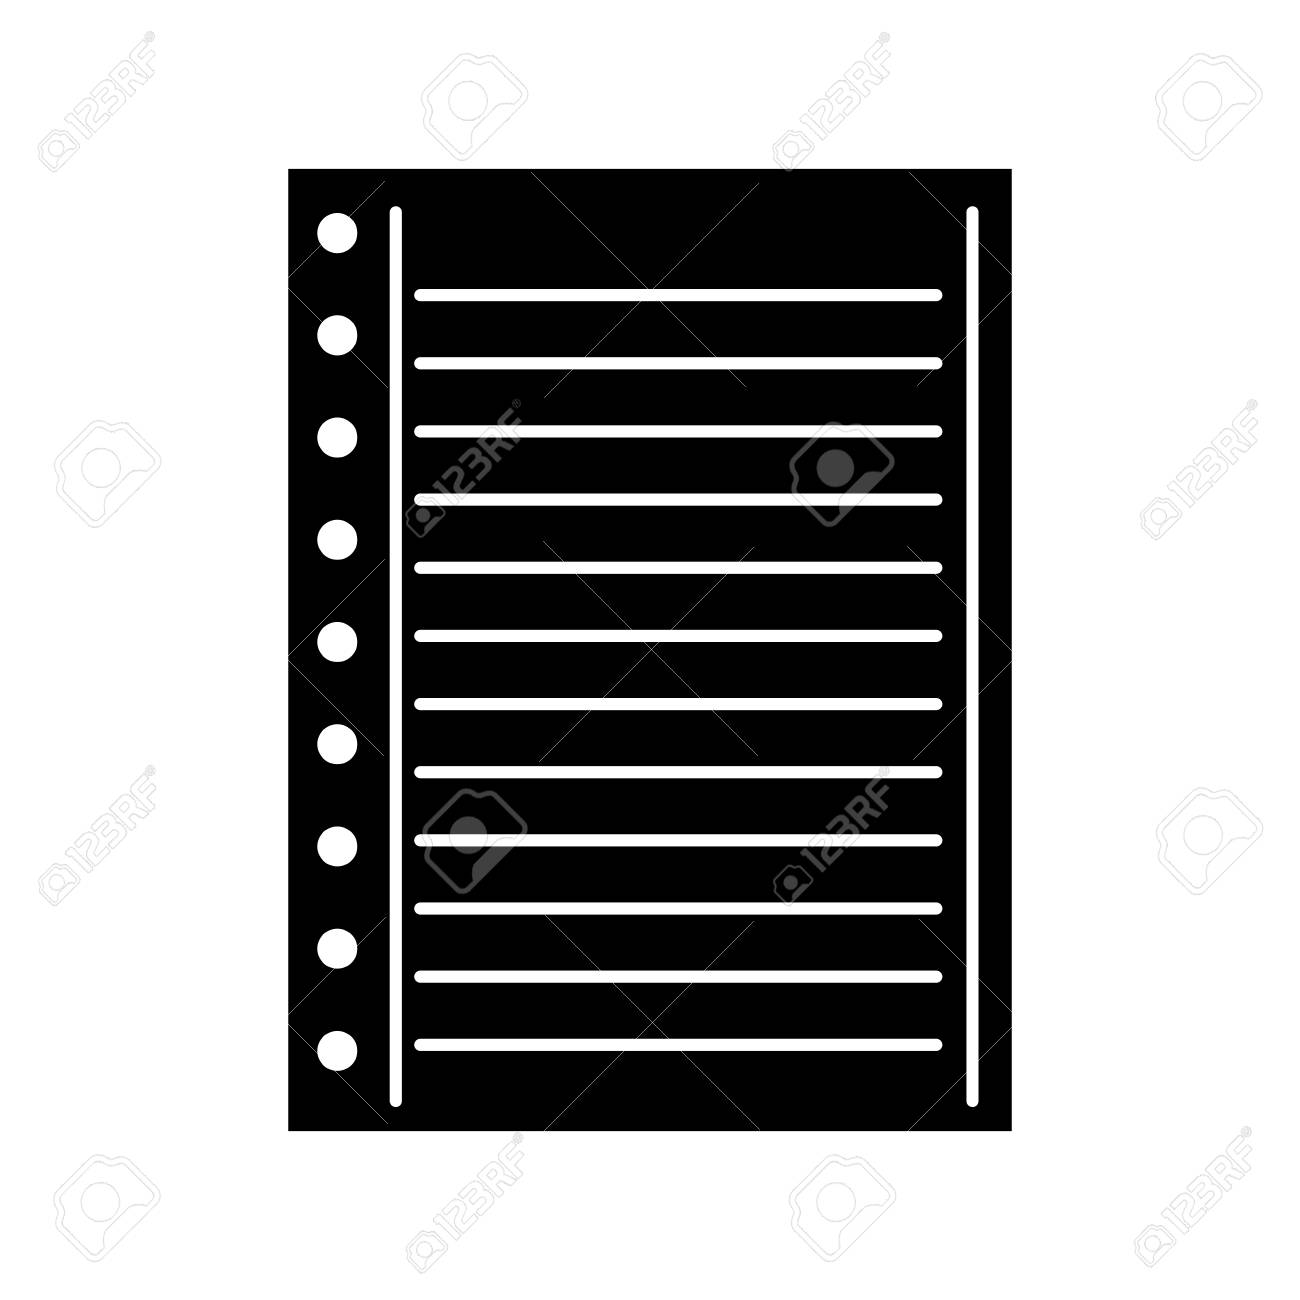 Lined Paper Note Page Blank School Vector Illustration Royalty Free ...